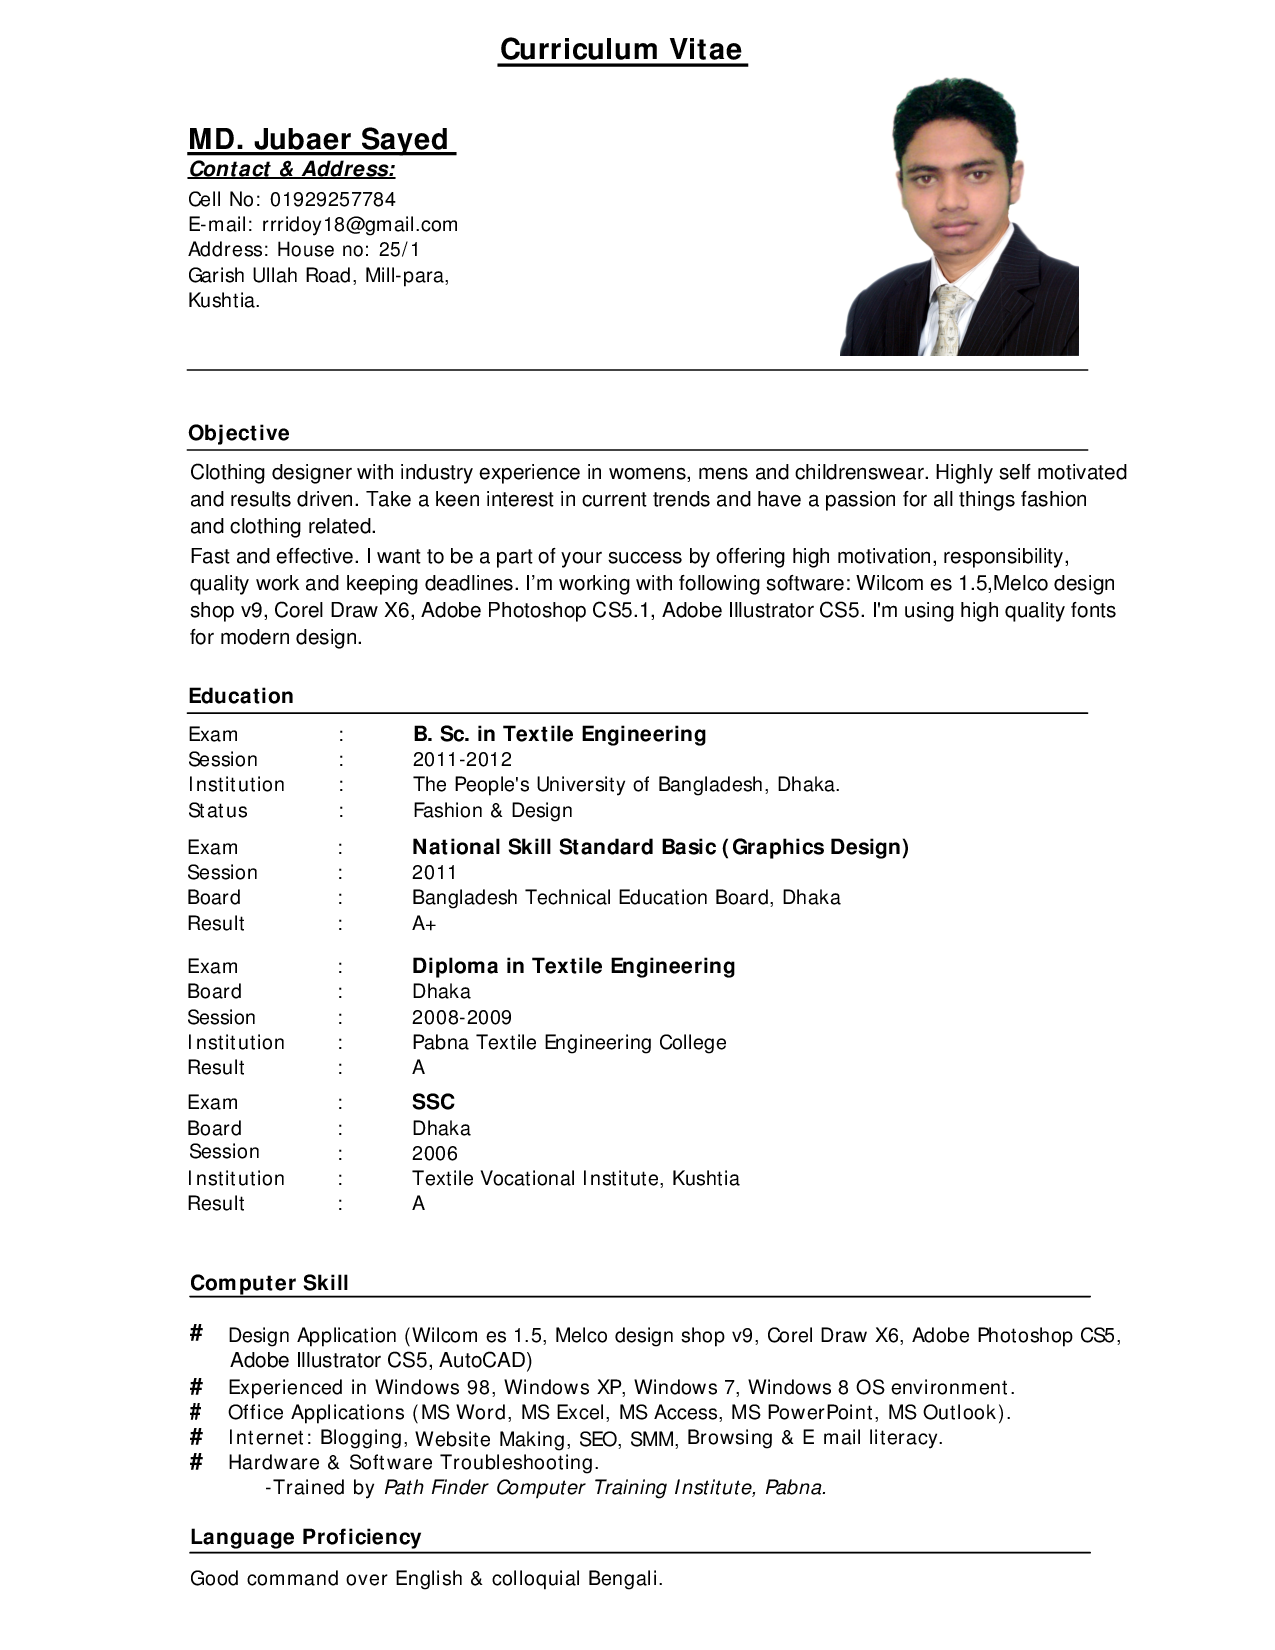 curriculum vitae resume sample curriculum vitae few tips on few tips on writing a perfect curriculum vitae